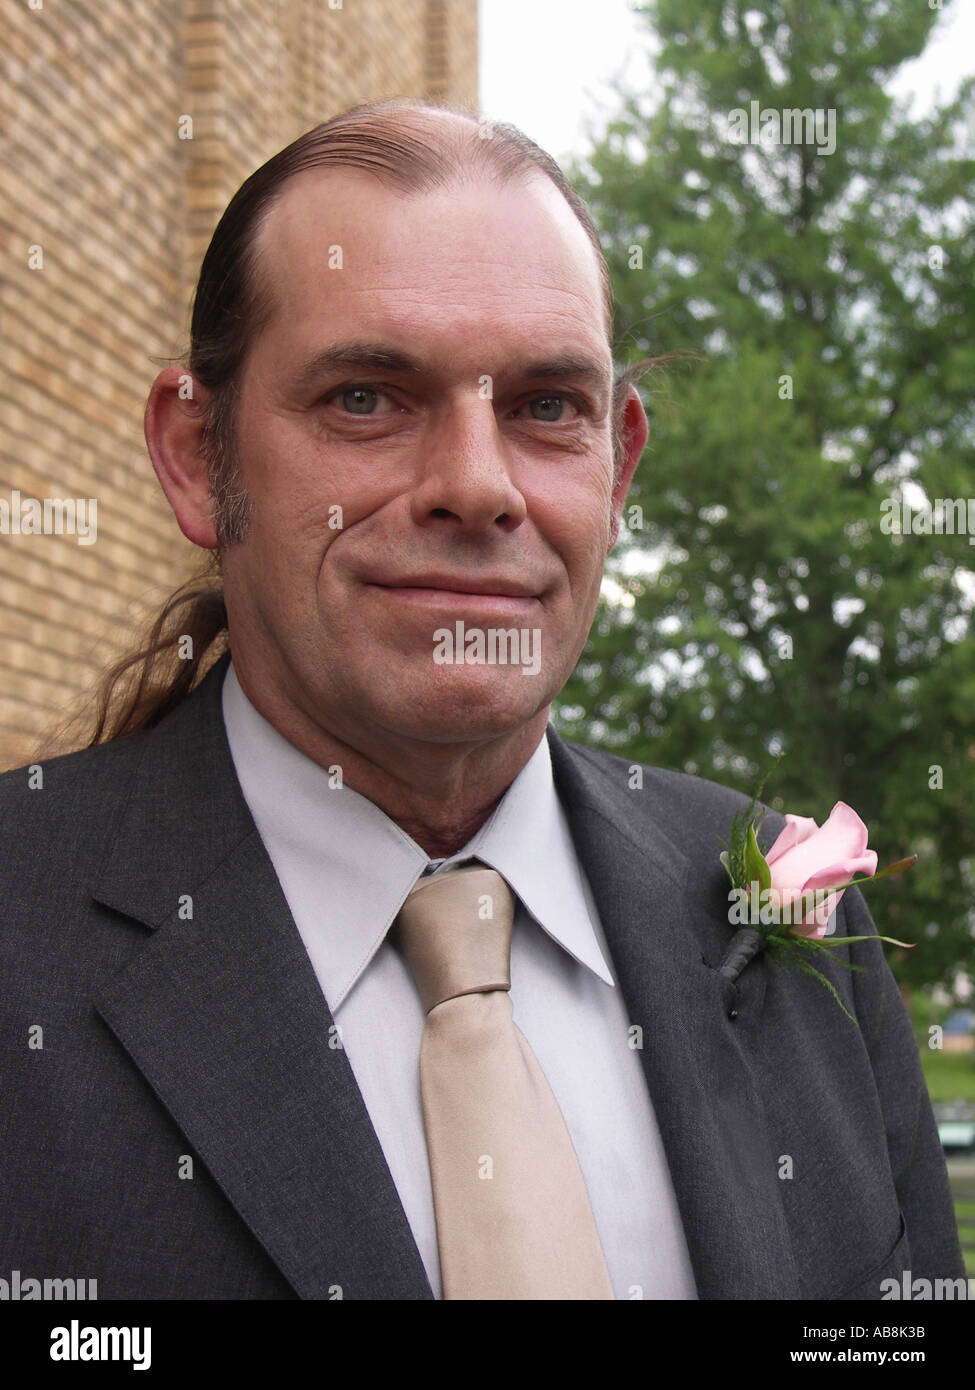 Middle Age Man Dressed Up - Stock Image